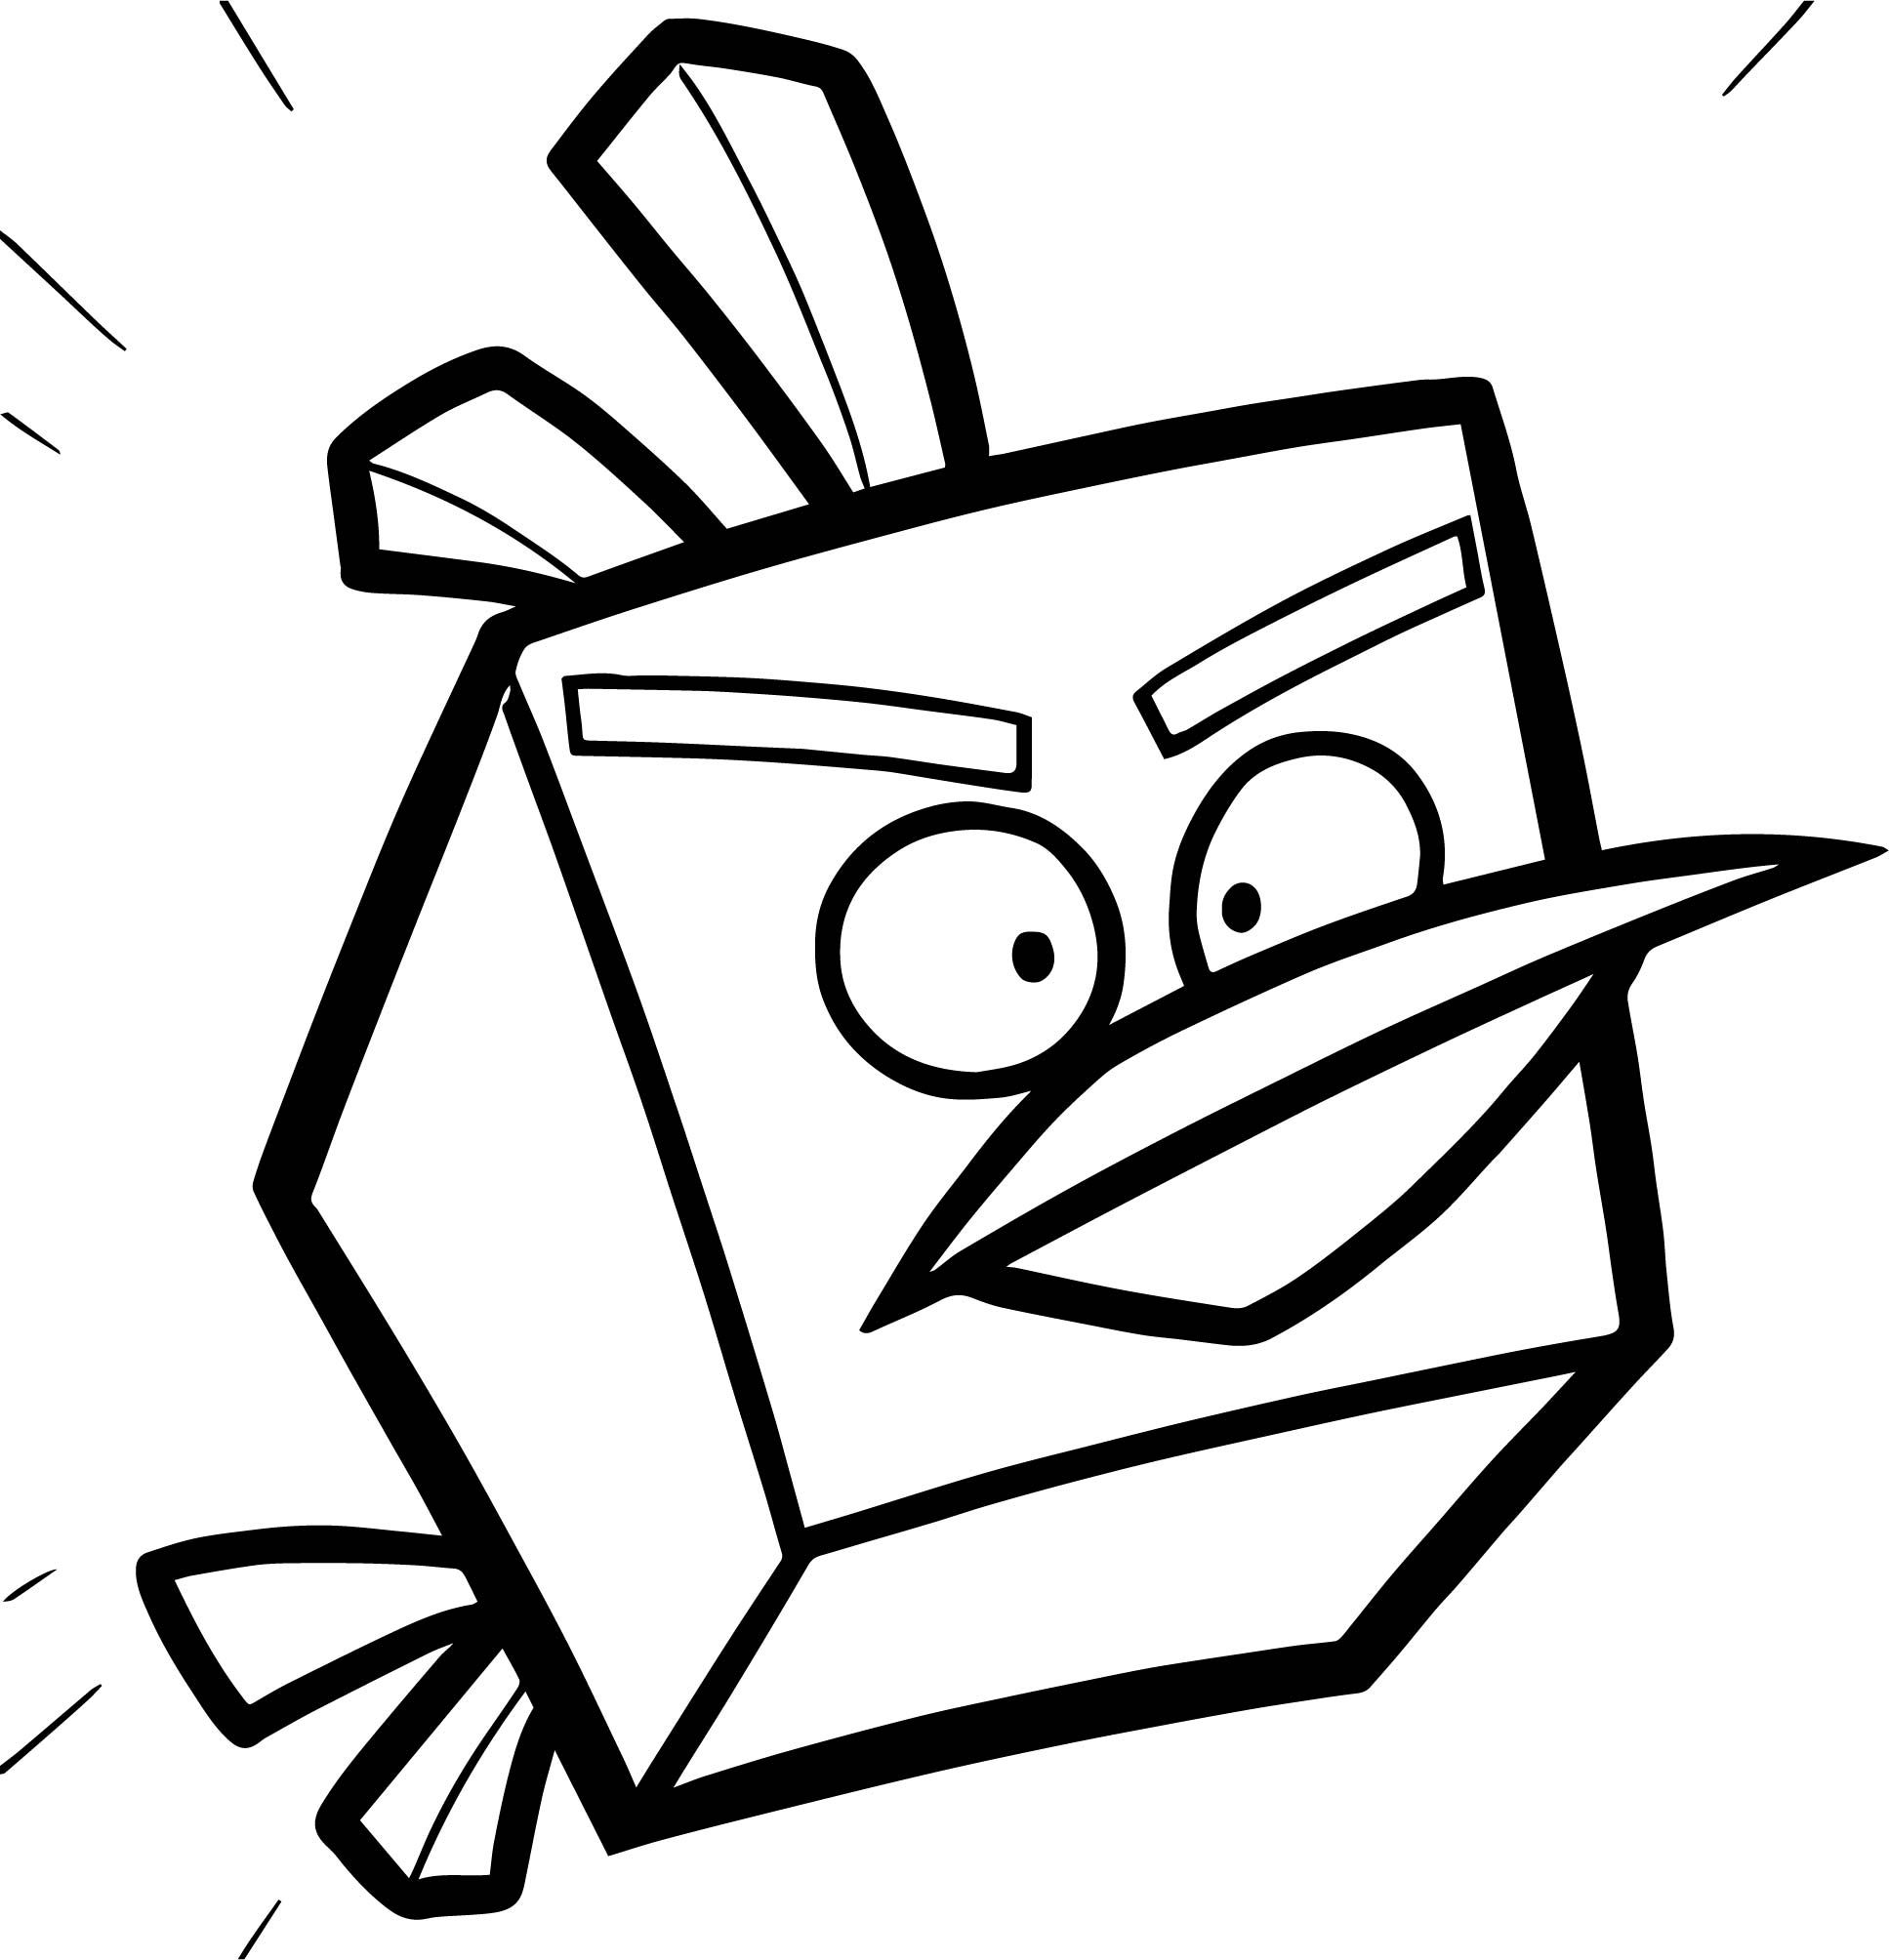 Angry Birds Ice Bird In Angry Bird Space Coloring Page In 2020 Space Coloring Pages Bird Coloring Pages Coloring Pages